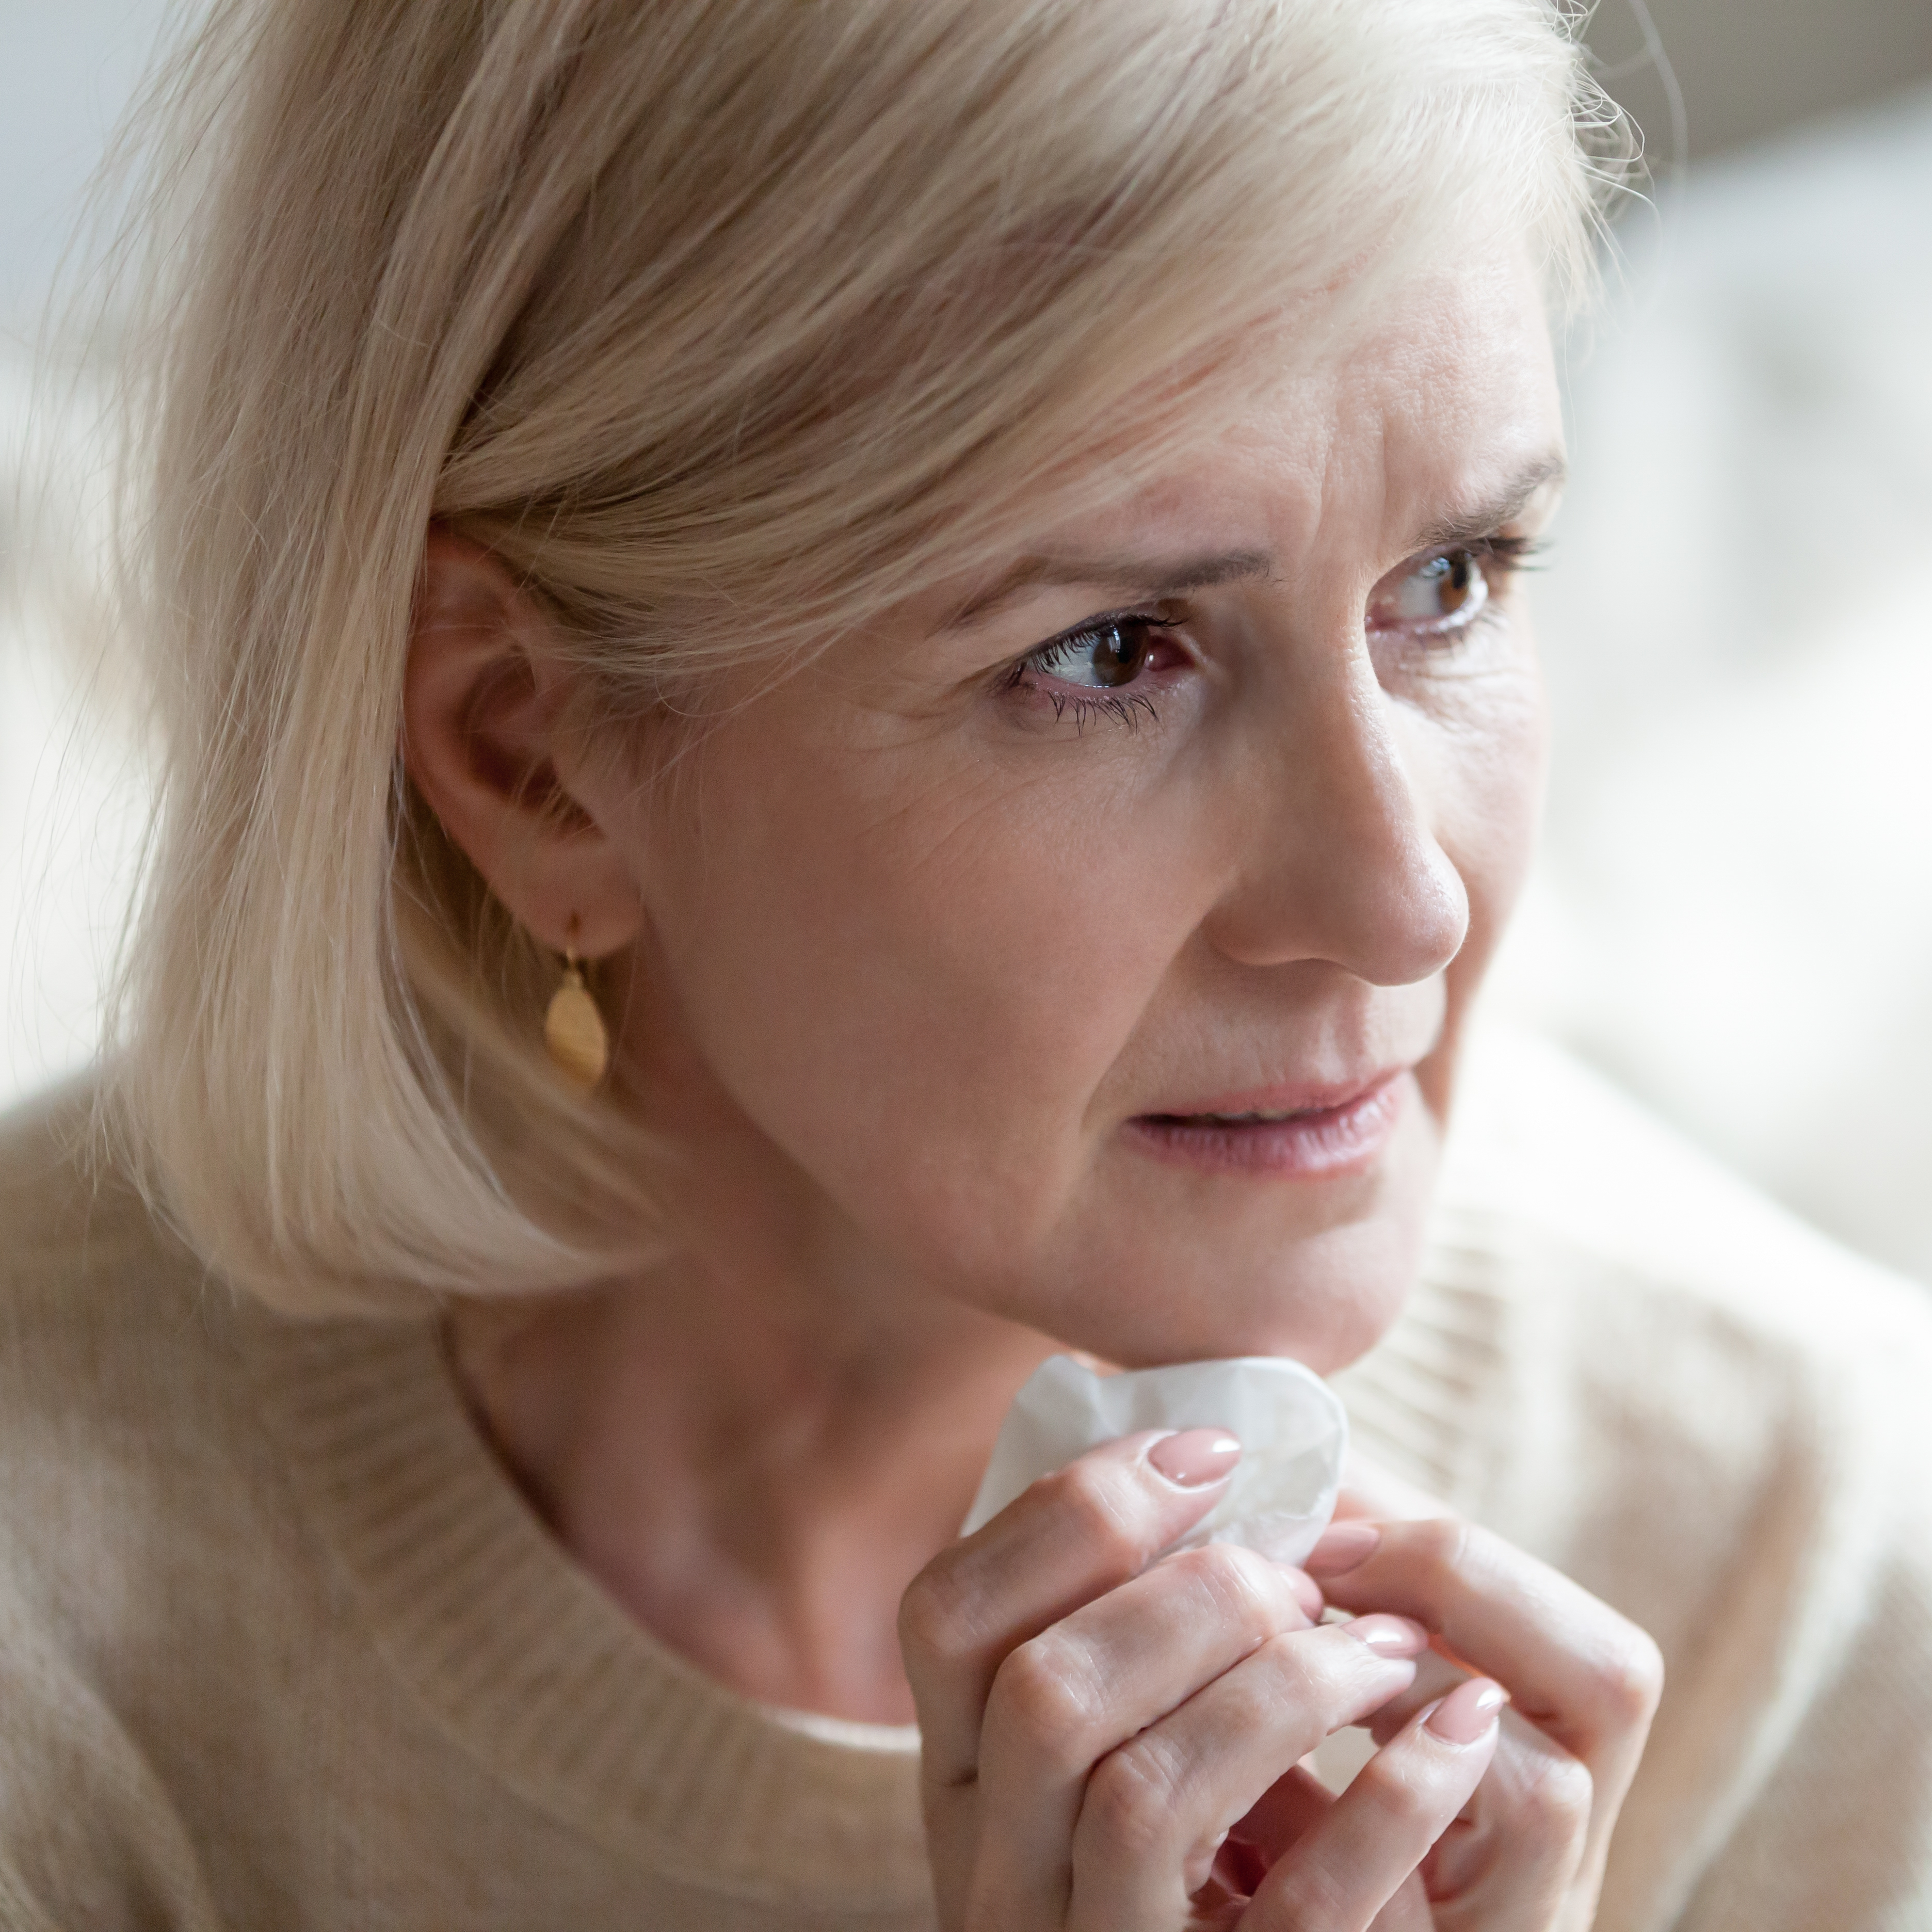 a middle aged woman holding a tissue looking worries, sad, concerned or frightened